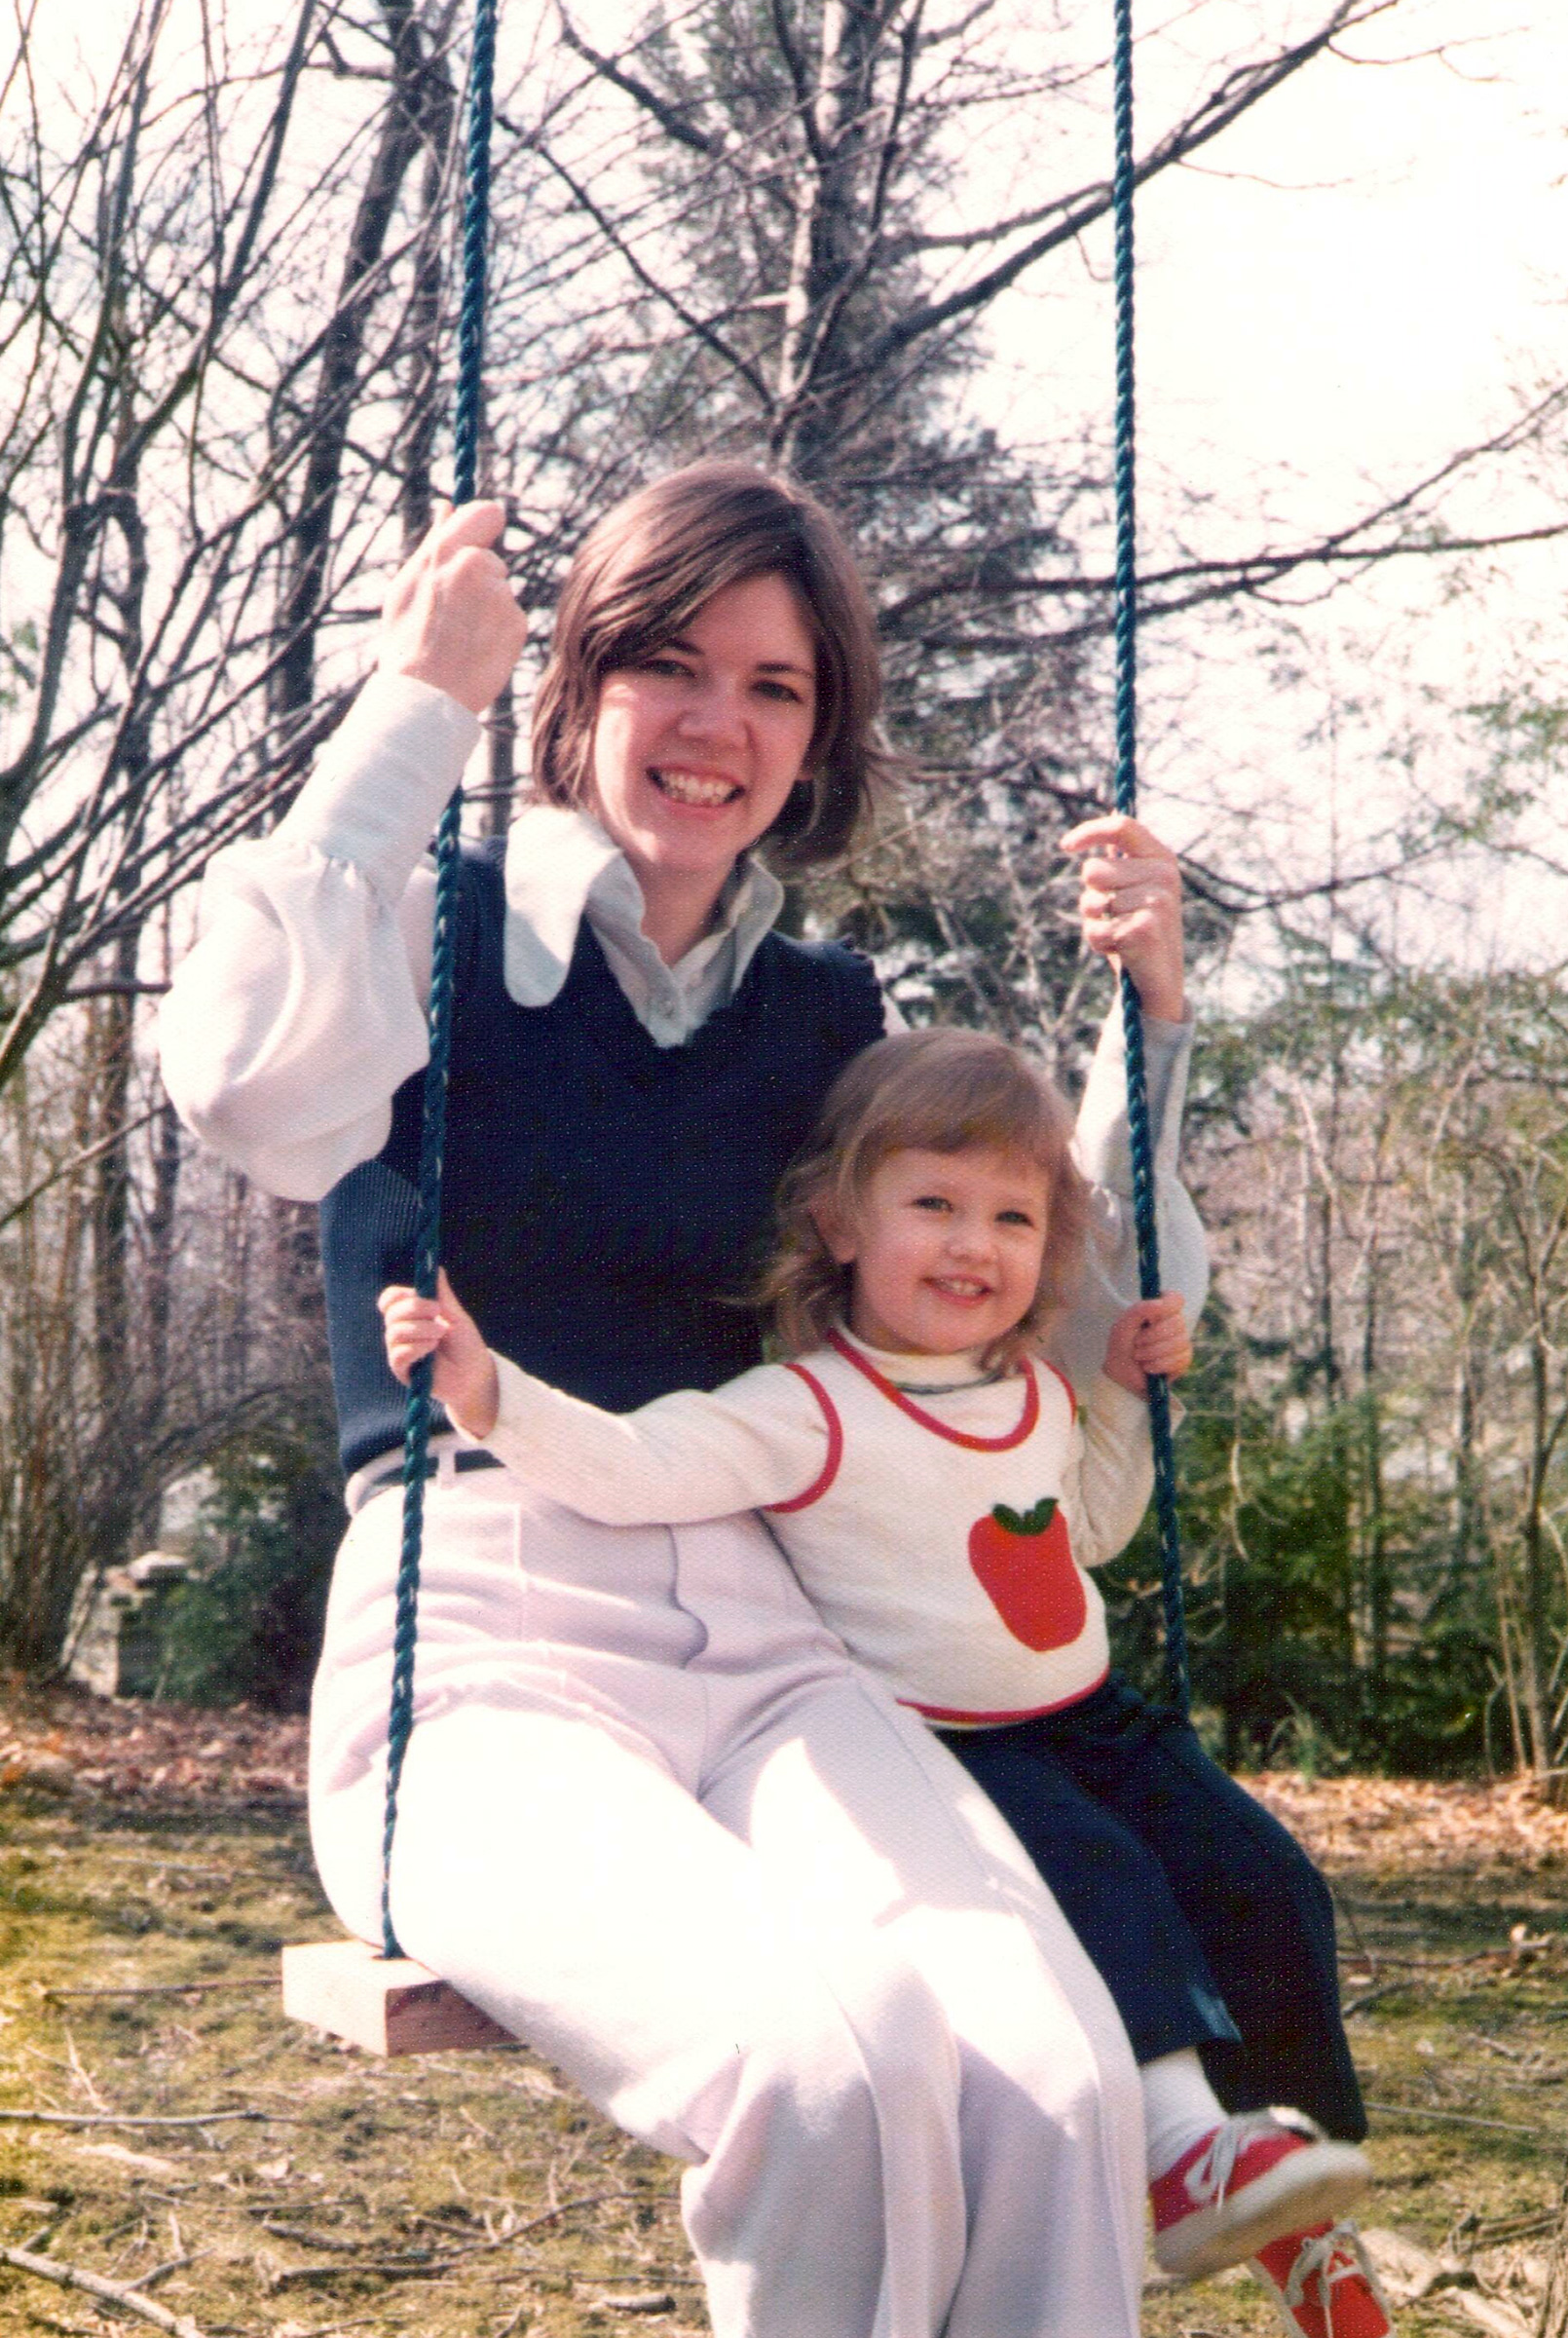 Warren with her daughter, Amelia, in the early 1970s.